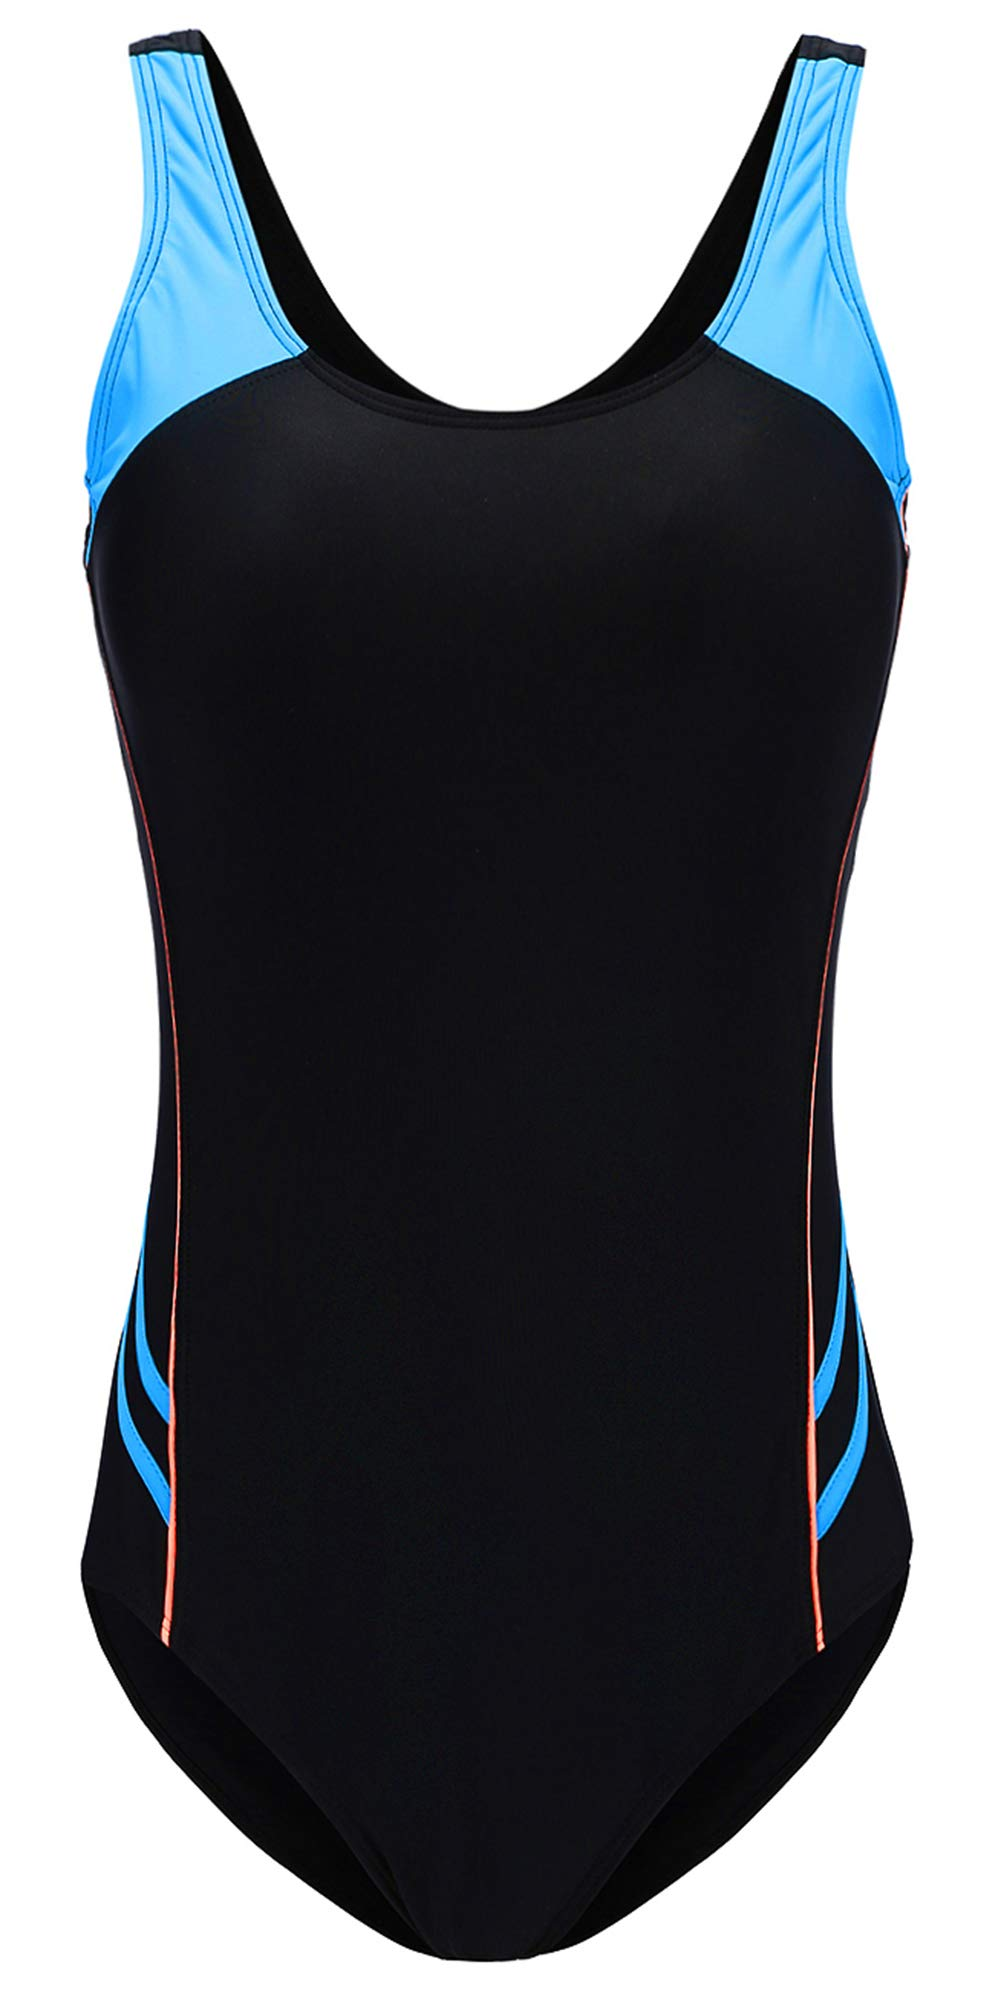 EBMORE Womens One Piece Swimsuit Bathing Suit Chlorine Resistant For Athletic Sport Training Exercise (XL/US (10-12), Black)